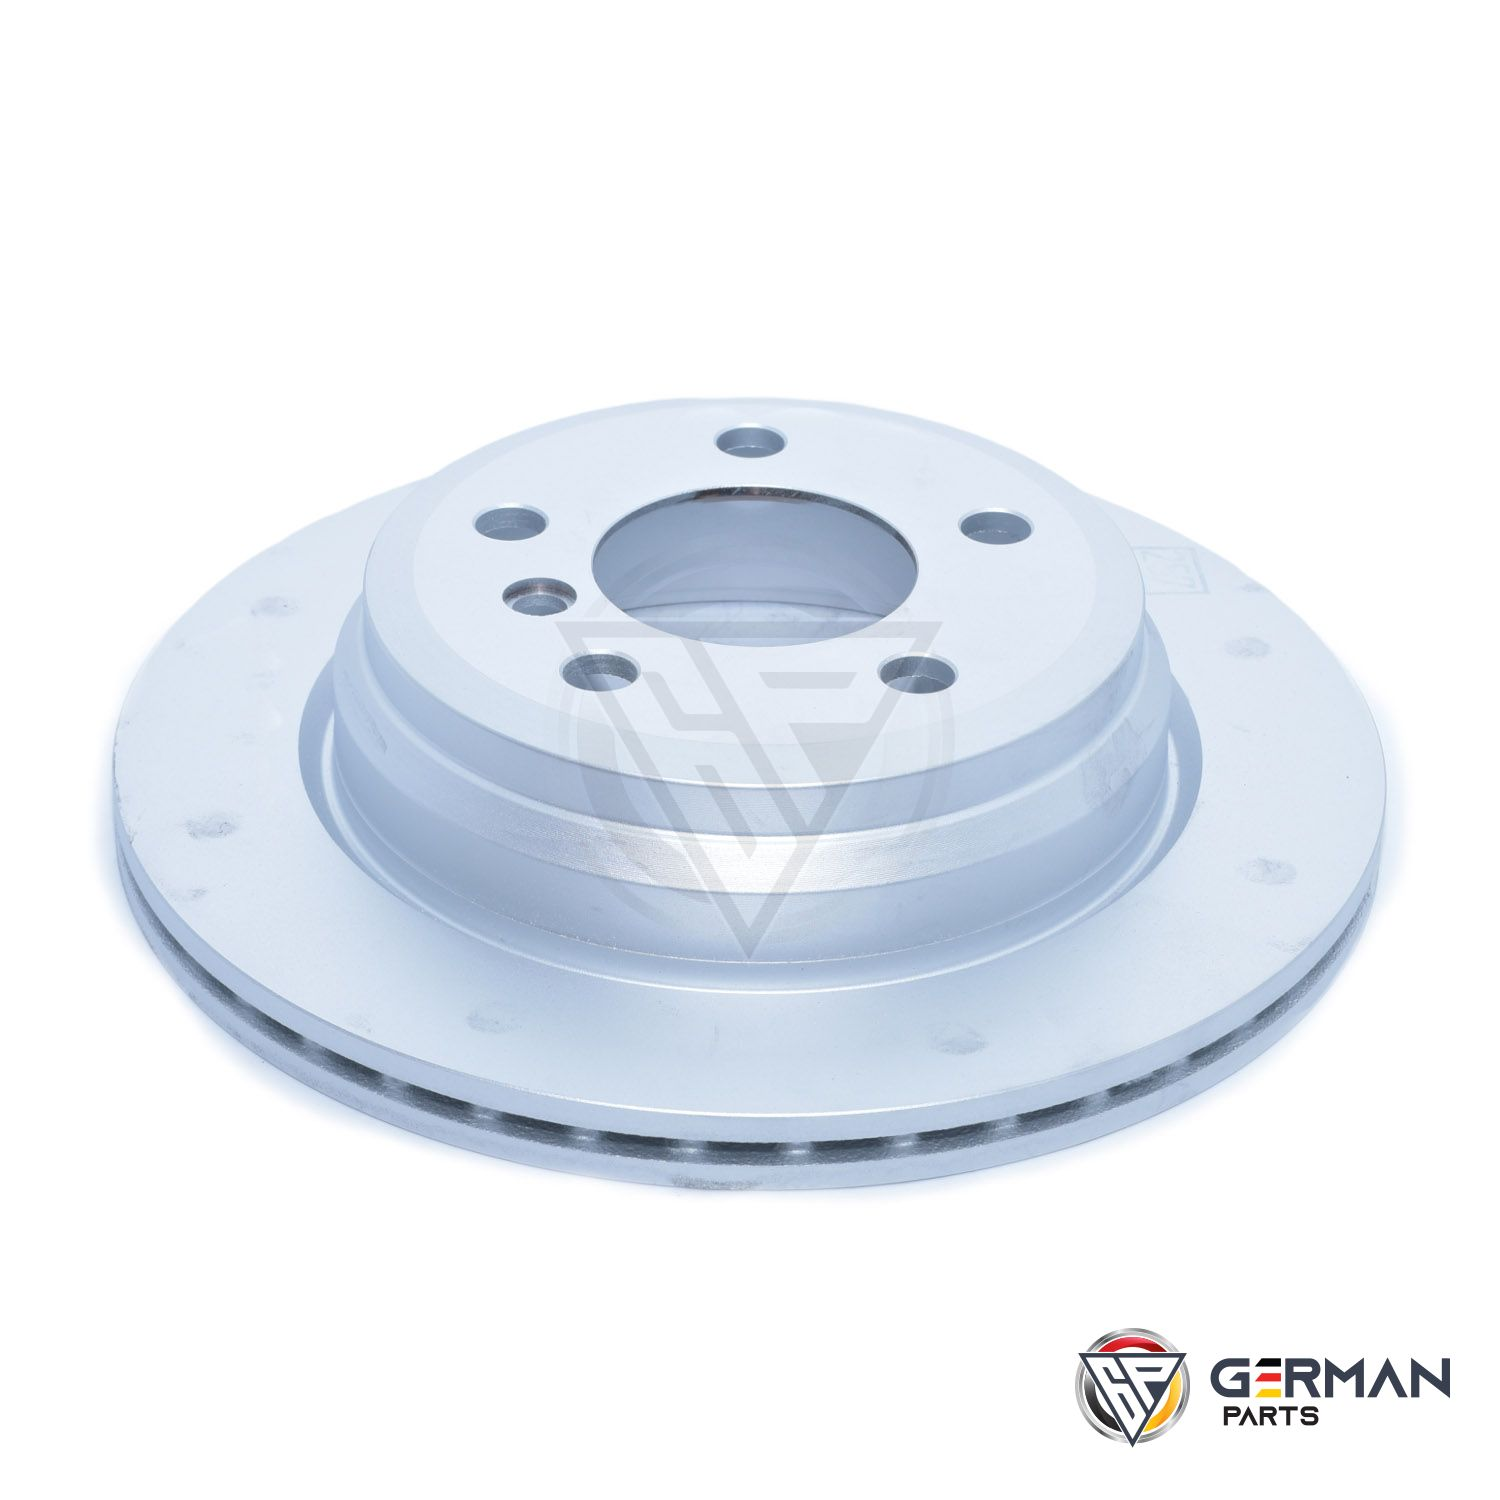 Buy Genuine BMW Rear Brake Disc 34216864900 - German Parts